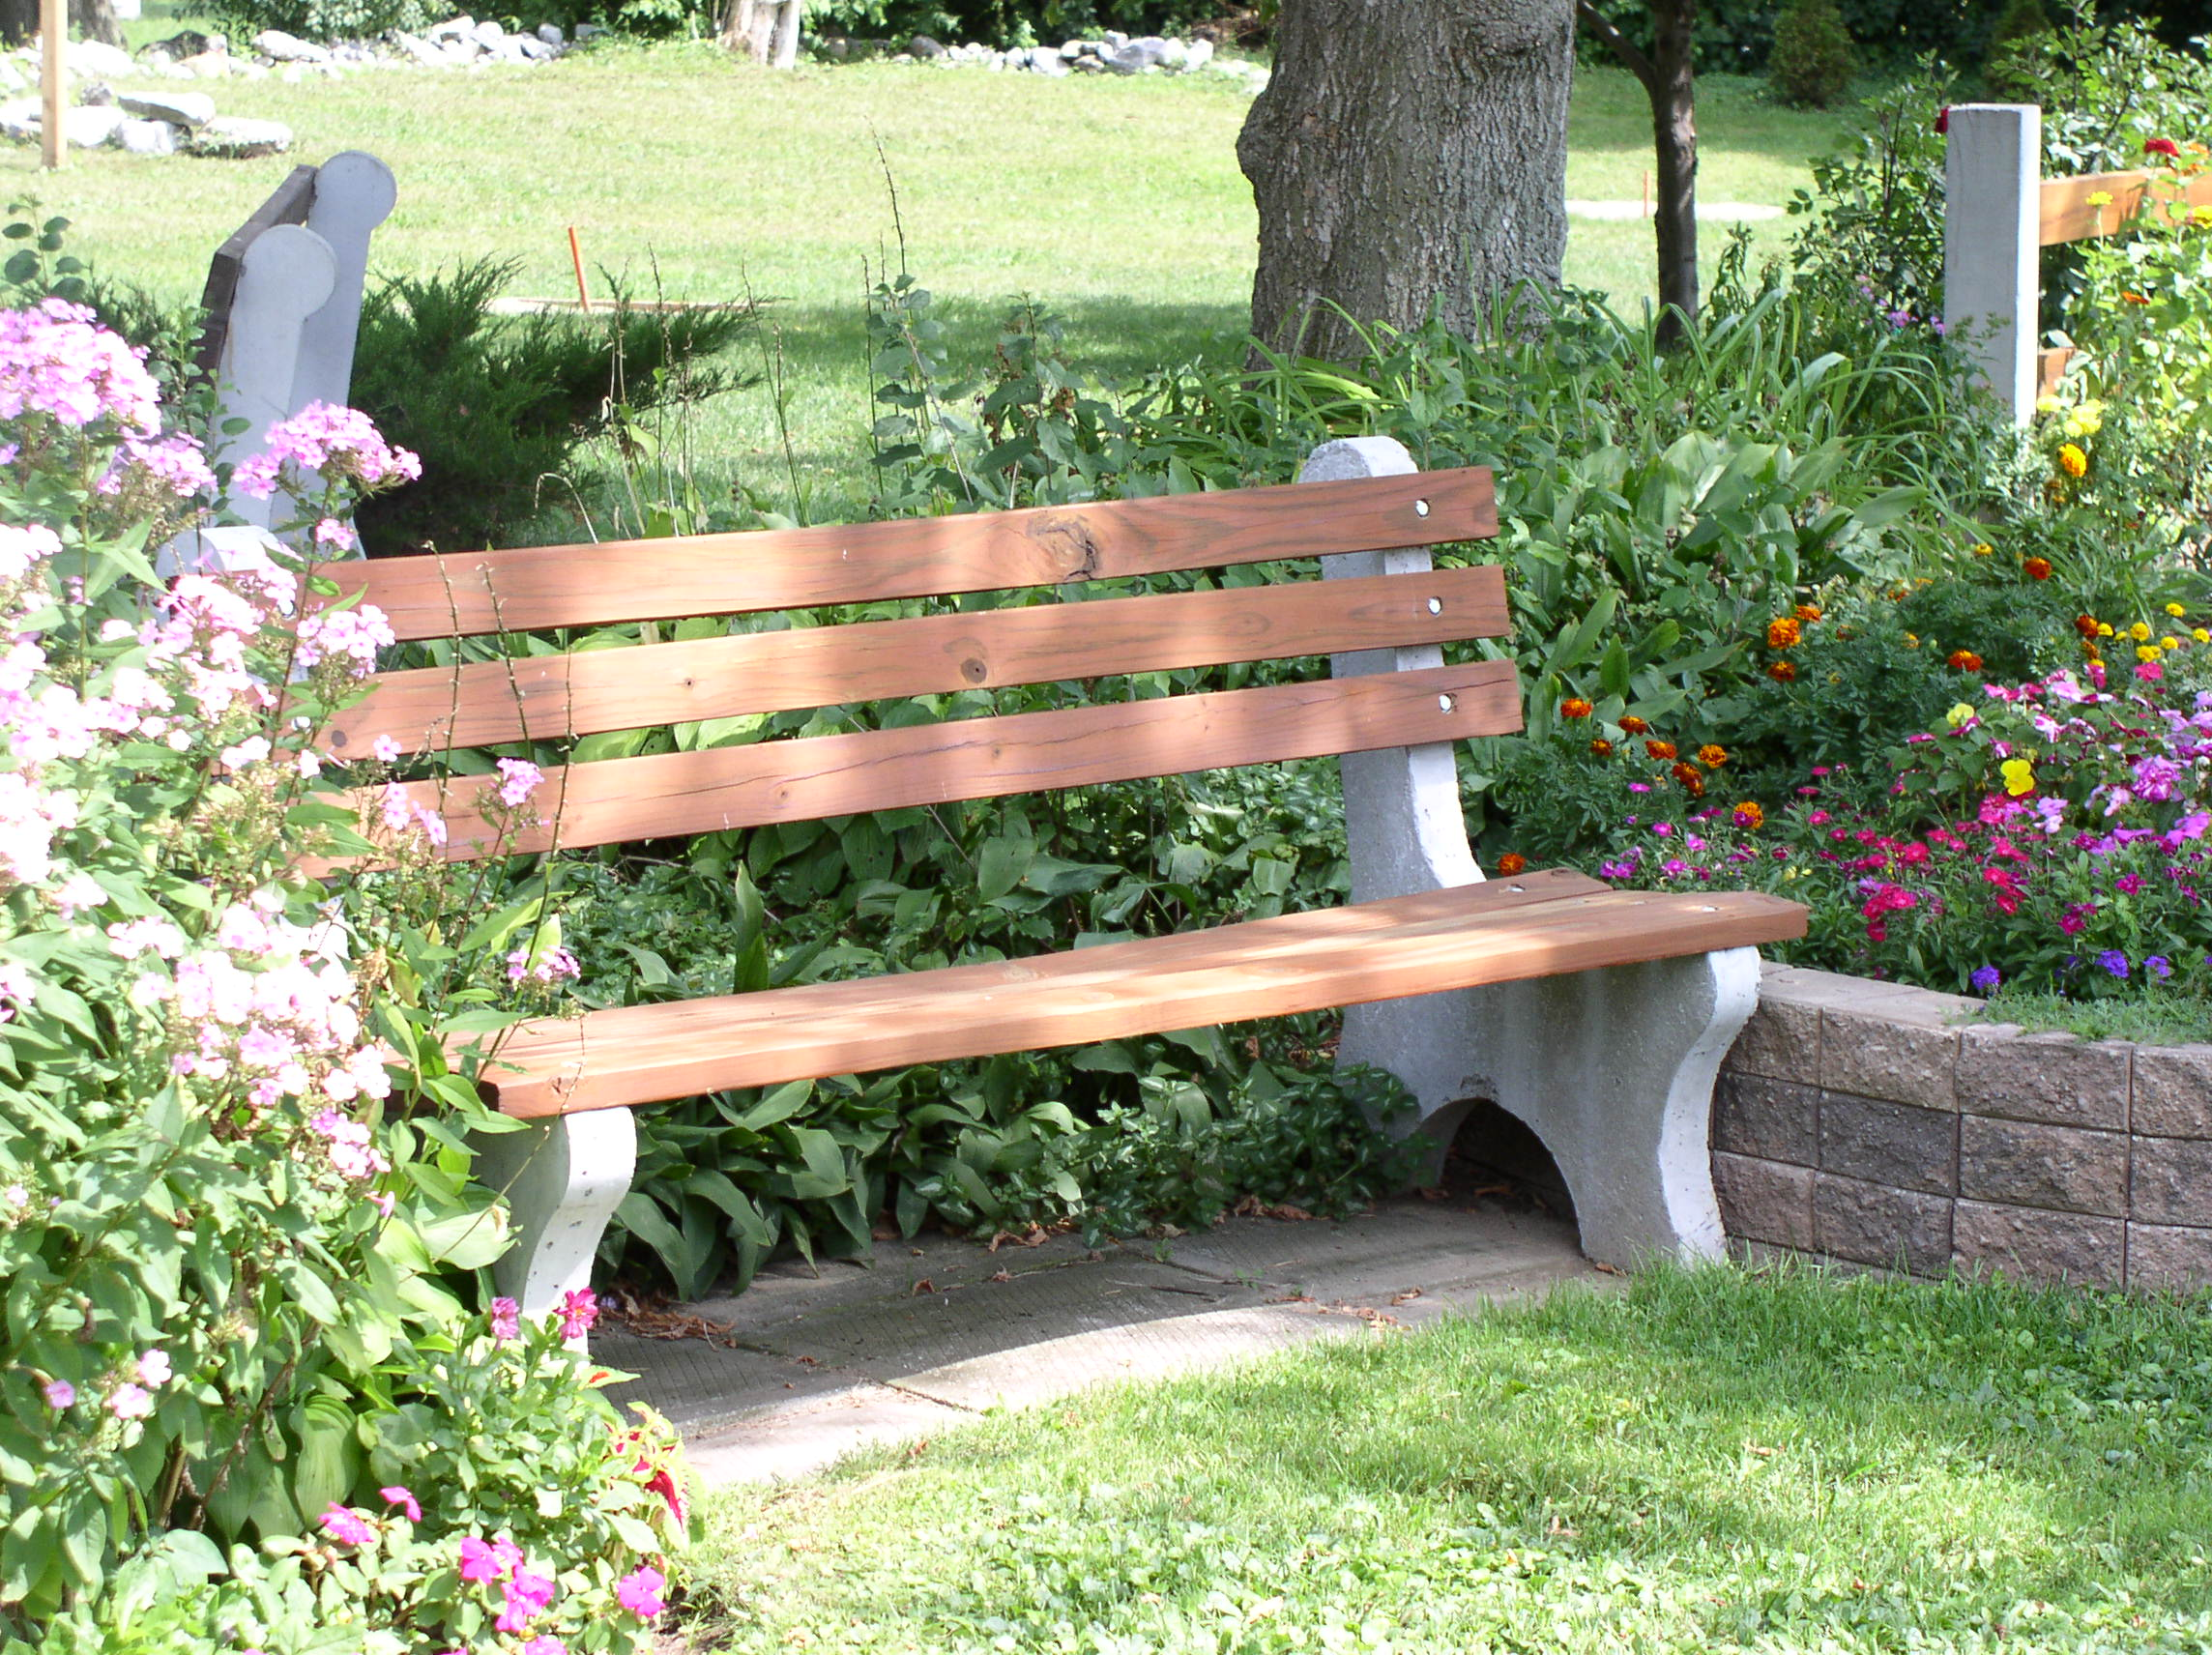 Park Bench Donated By Jefferson Concrete Corp Valued At 259